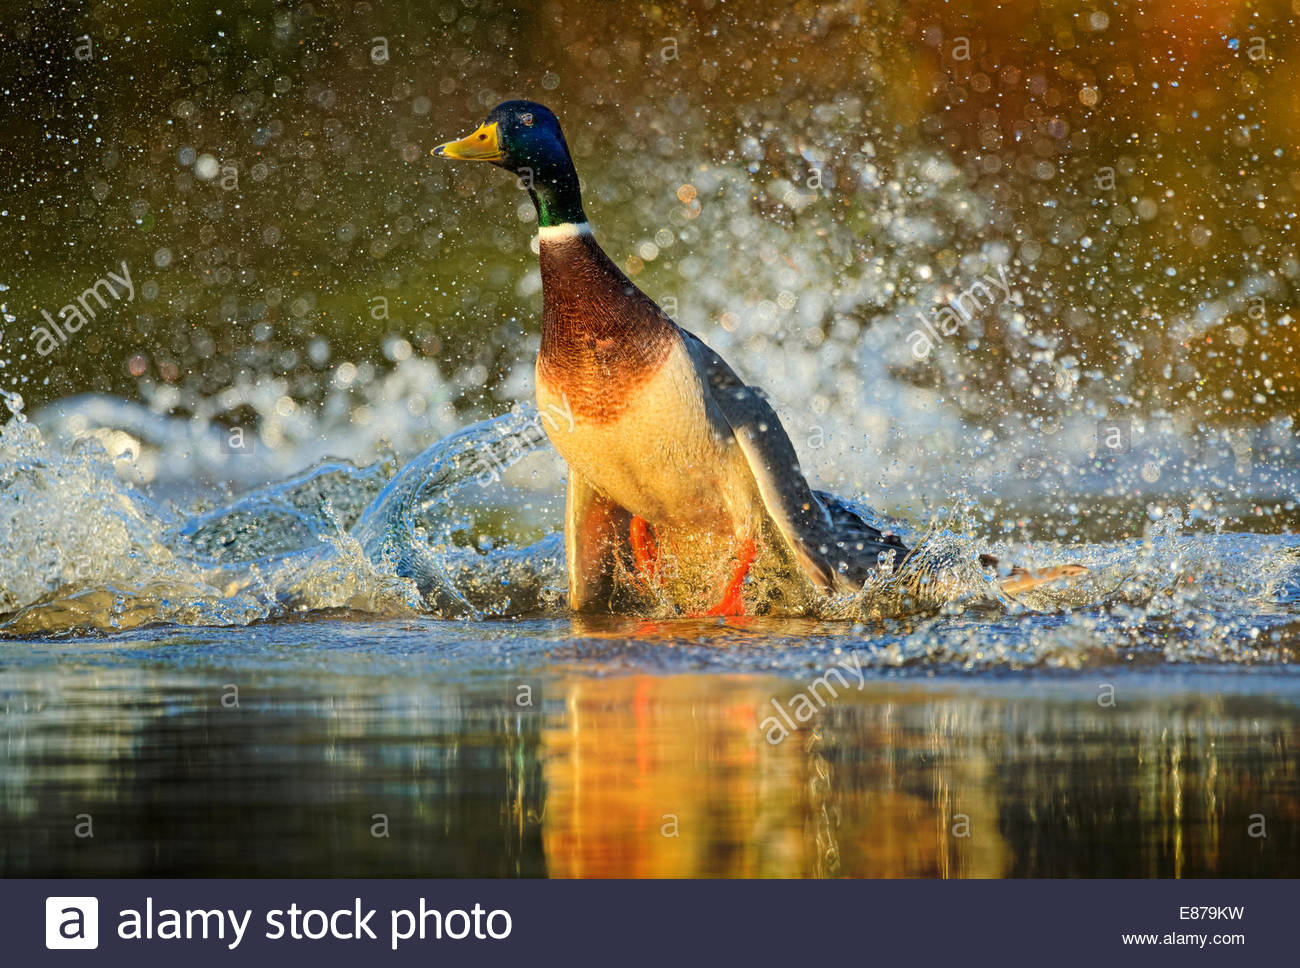 A Mallard Duck taking off from a pond - Stock Image